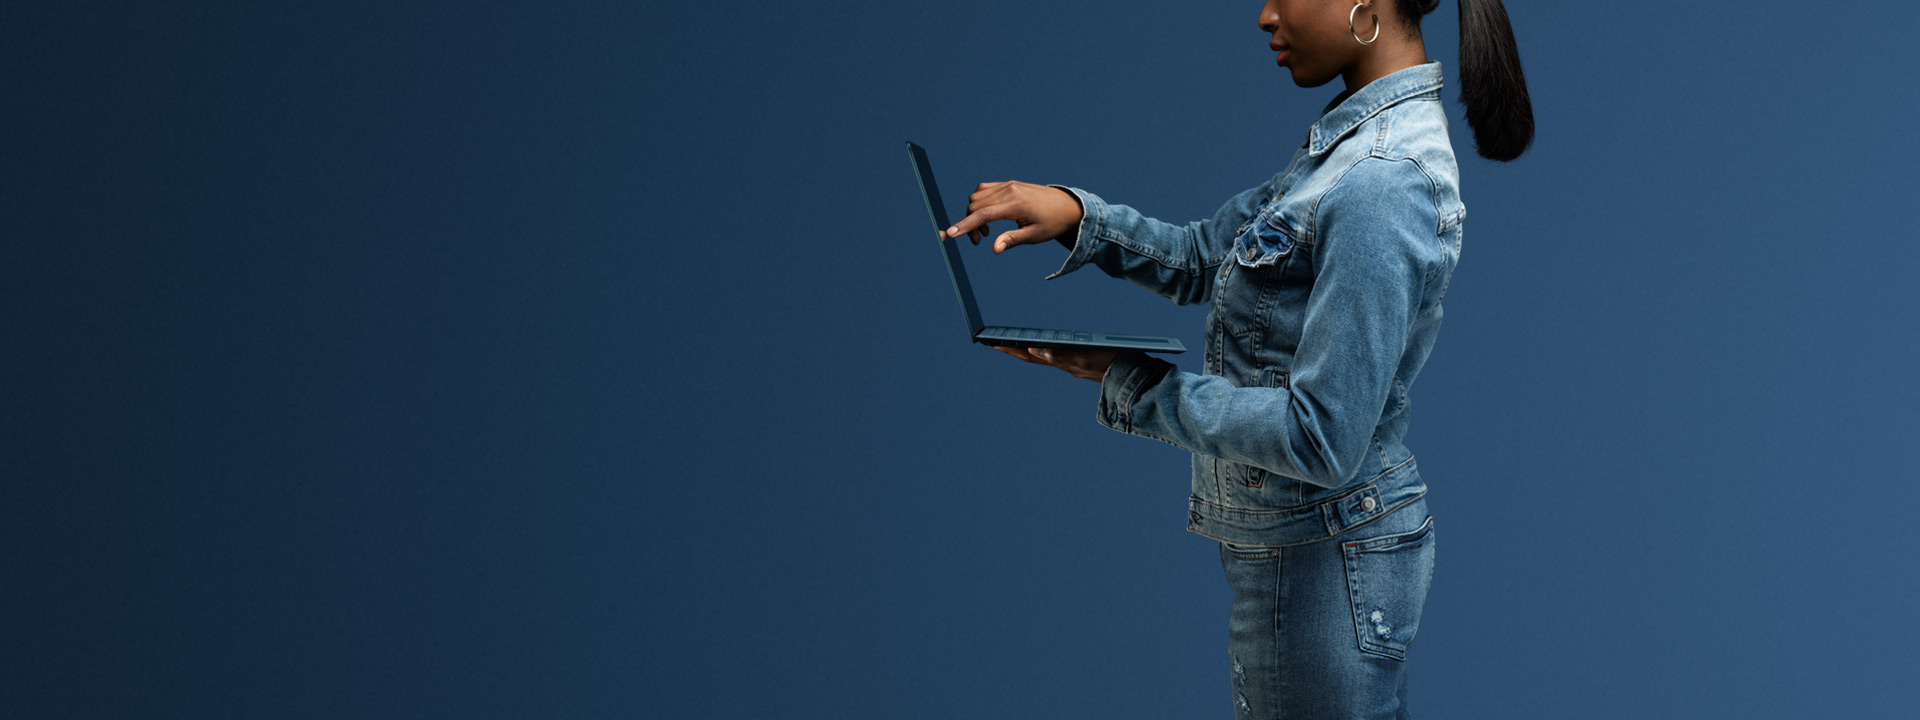 A girl holds Surface Laptop 2 while touching the screen